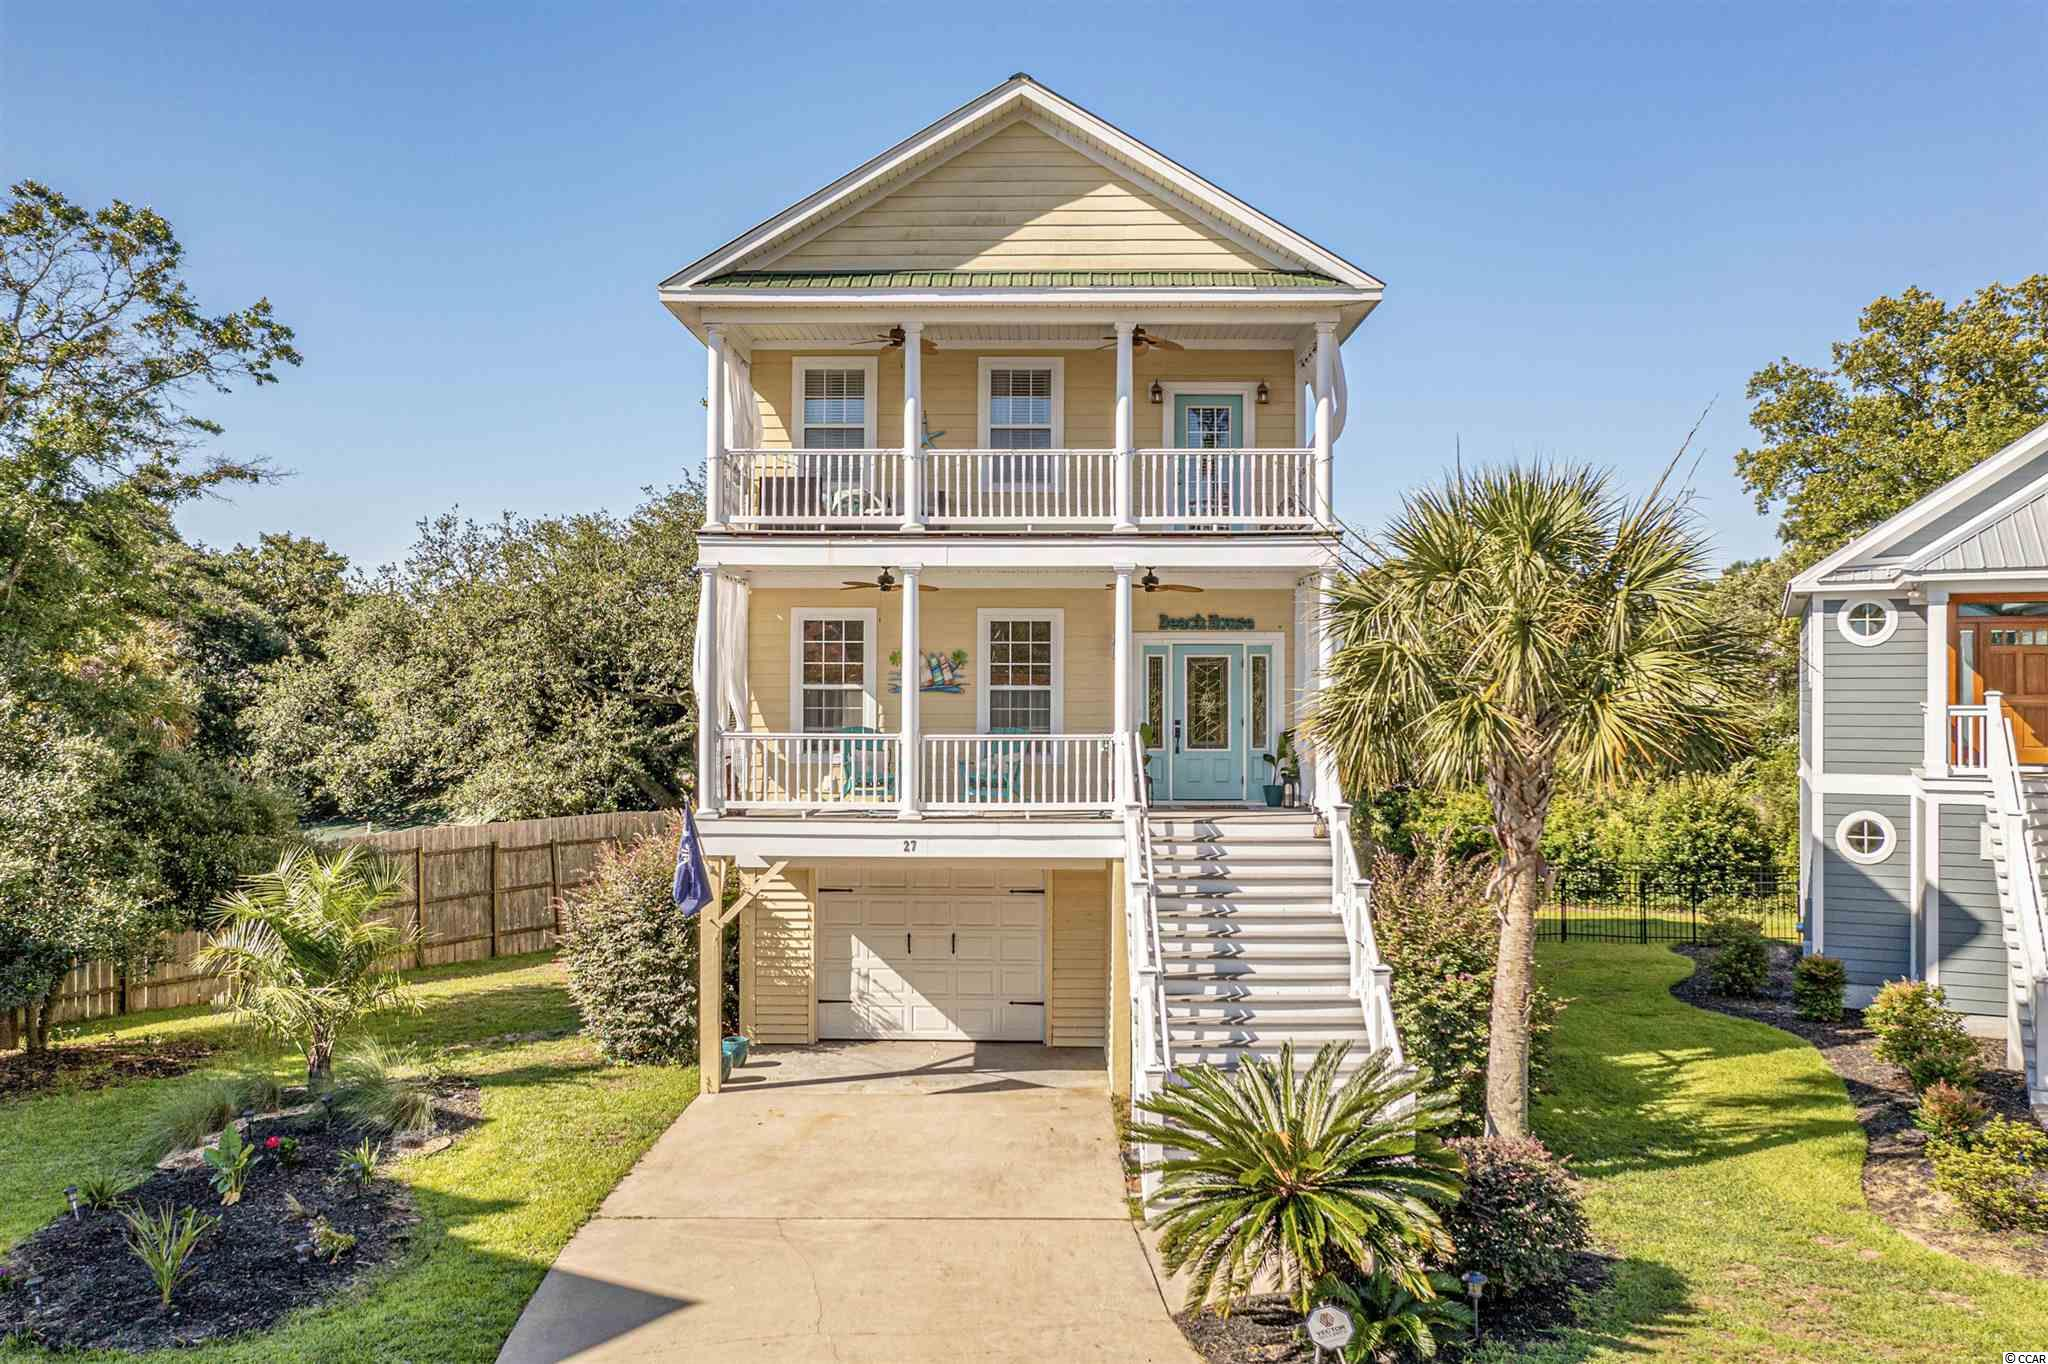 Welcome to the sought-after neighborhood of Creekside Cottages, located in the heart of Murrells Inlet. With the popular Marsh Walk just across the street, it is easy to feel like you're on permanent vacation with great restaurants, entertainment, marina and beaches available at your leisure. The neighborhood consists of beautiful raised beach homes, and this home you'll find is gorgeous from the inside out.  Tucked away on a quiet cul-de-sac with a water view. This 3 bedroom and 2 and a half bath home is a dream. Once you enter the home you will take notice of the open and bright floor plan, beautiful wood flooring throughout. The kitchen features stainless steel appliances, granite countertops, tons of storage, and a breakfast bar. Off the dining area you'll be able to walk out onto your screened in balcony and enjoy the peace and serenity of southern living. Speaking of balconies there are FOUR spacious balconies, one being a private upper sun deck. The master suite is stunning with a large bathroom, oversized tile shower, double sinks and linen closet. Under the home is the 2 plus car garage, with plenty of room for a golf cart or even a small boat. Schedule a showing before it's gone!